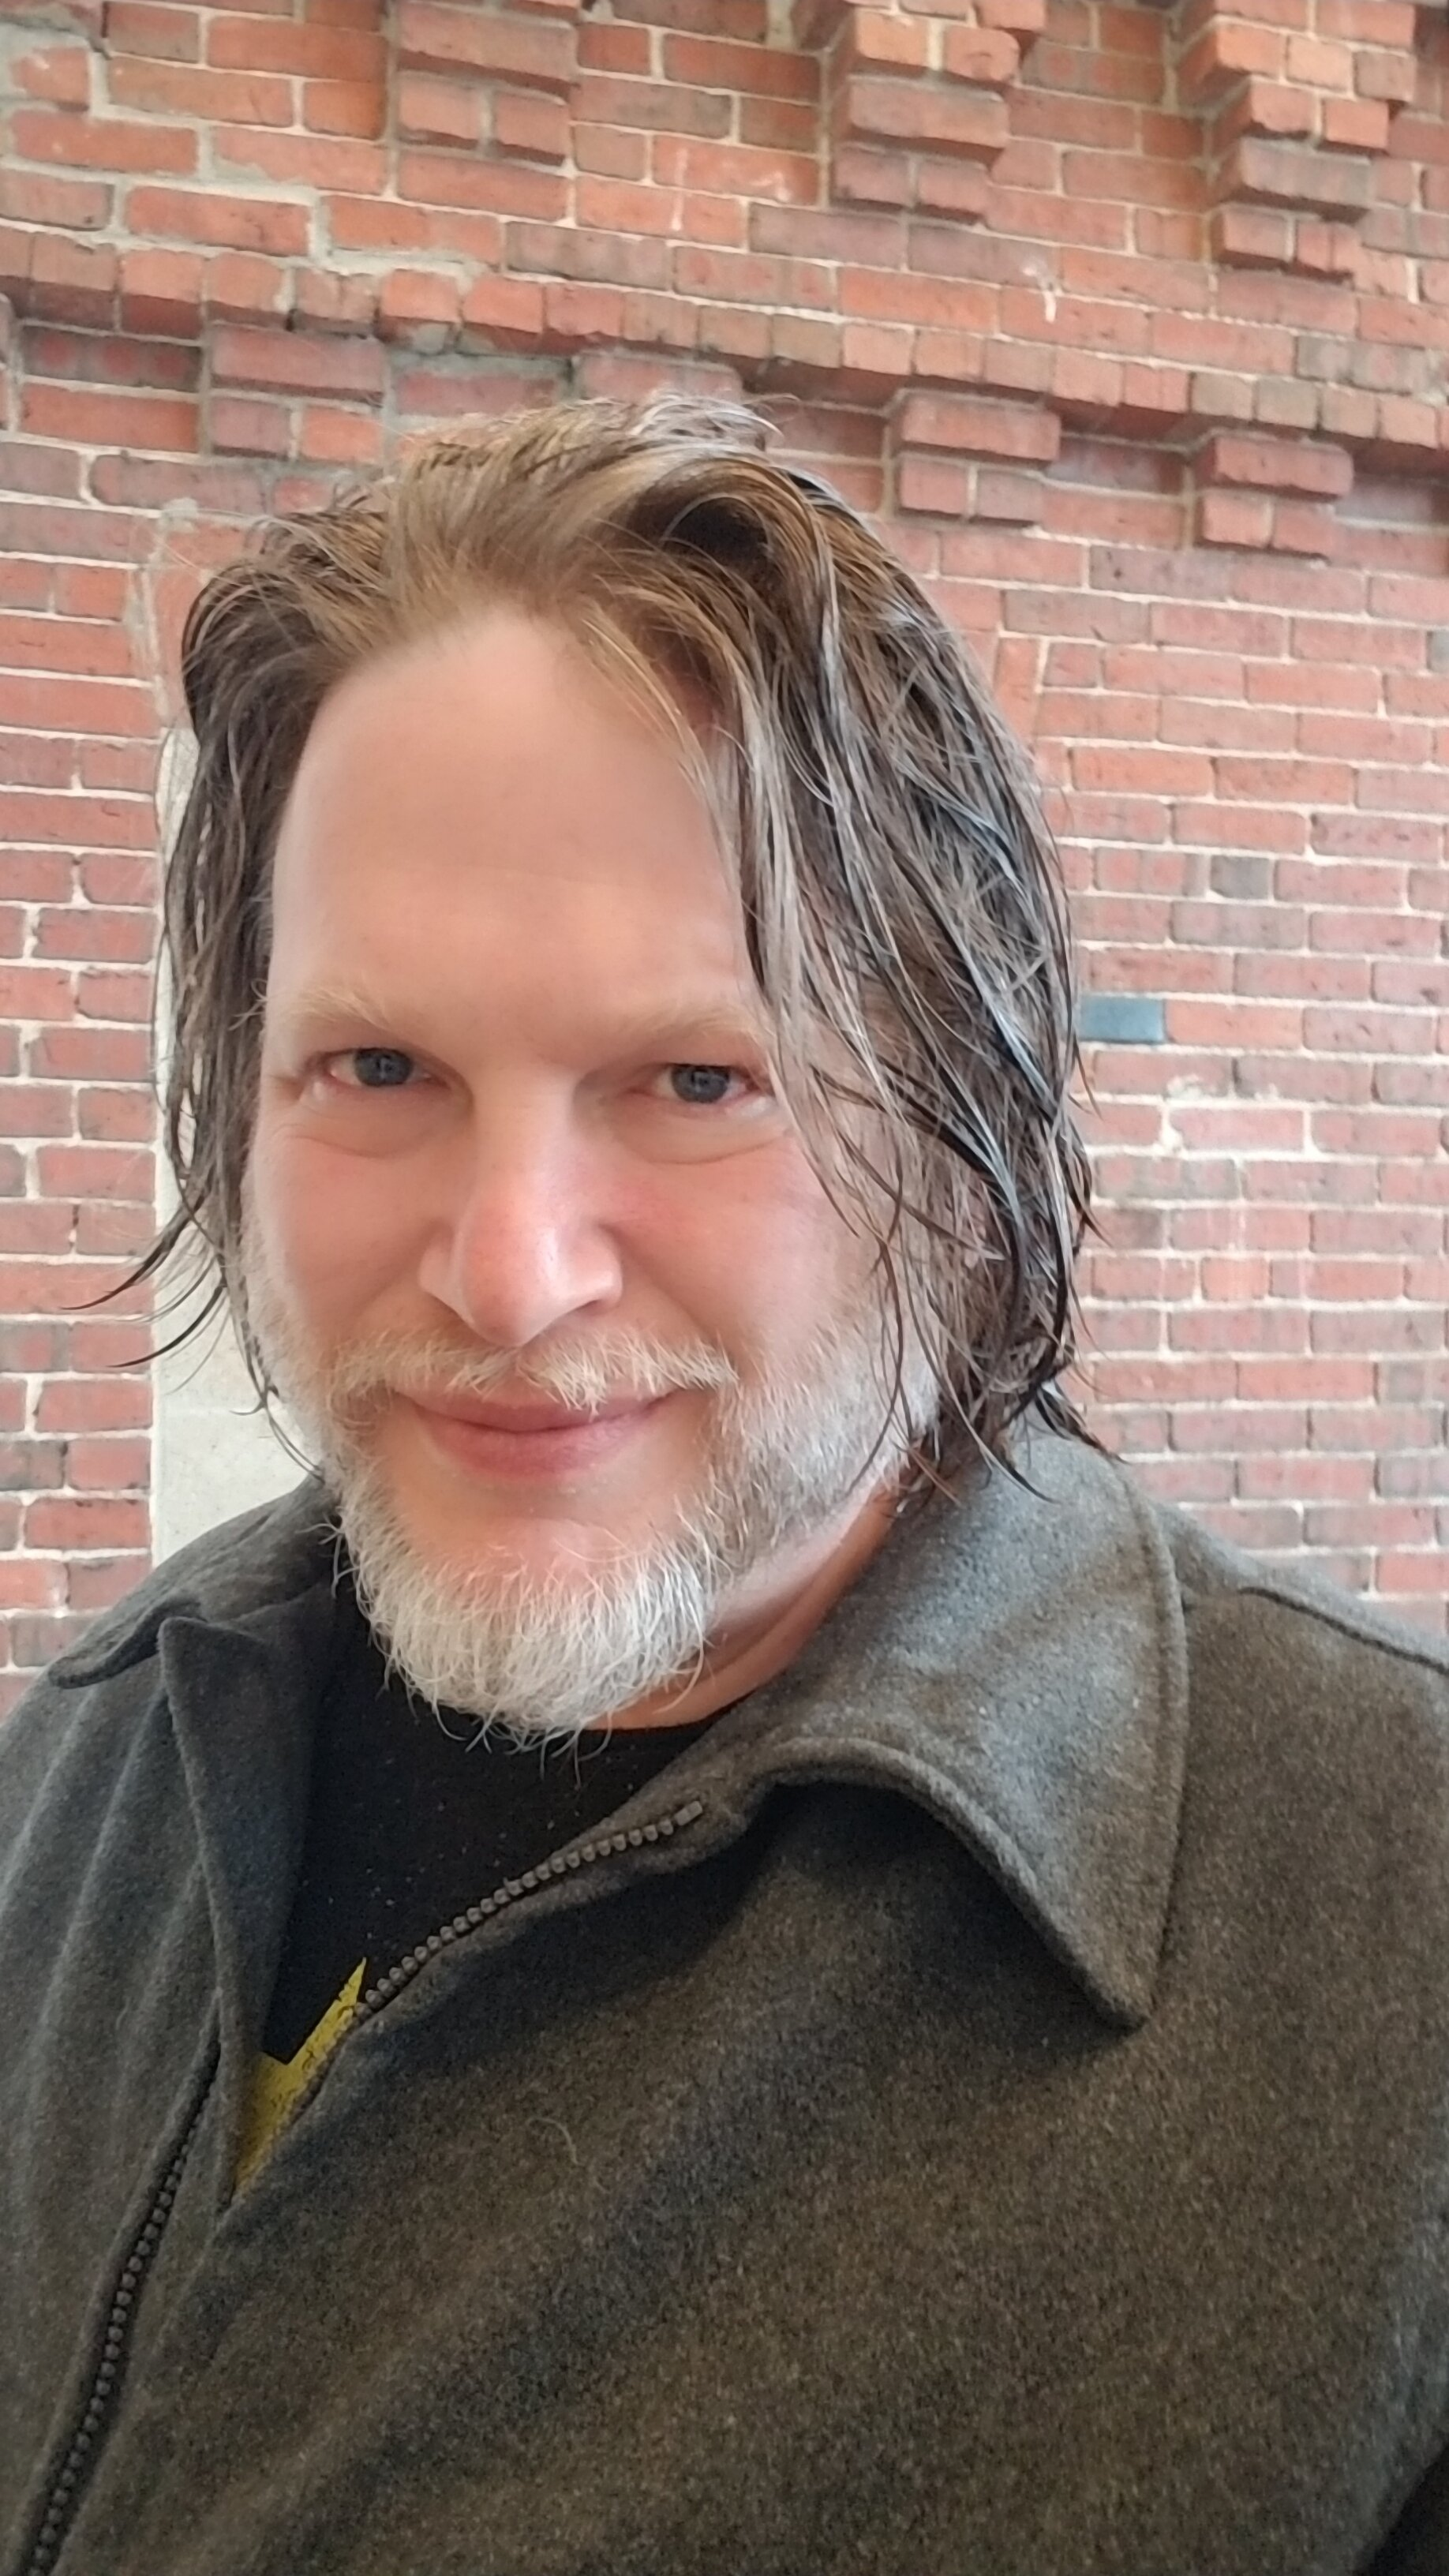 Chris Brogan talks about Ketamine treatment for depression and the dented on episode 96 of You, Me, Empathy.